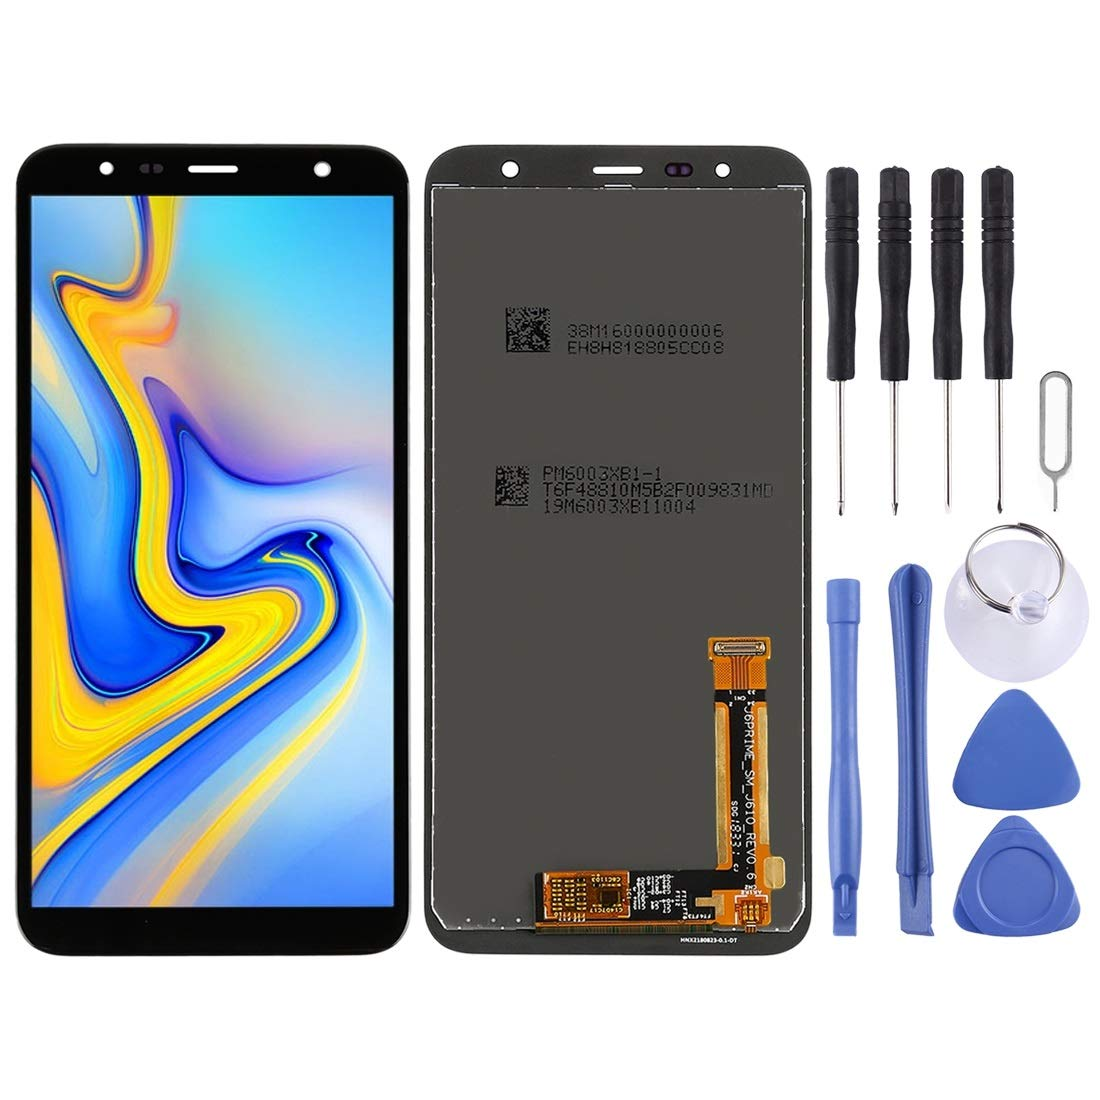 CLEE Phone Accessories COU LCD Screen and Digitizer Full Assembly for Galaxy J6+, J4+, J610FN/DS, J610G, J610G/DS, J610G/DS, J415F/DS, J415FN/DS, J415G/DS (Black) (Color : Black)